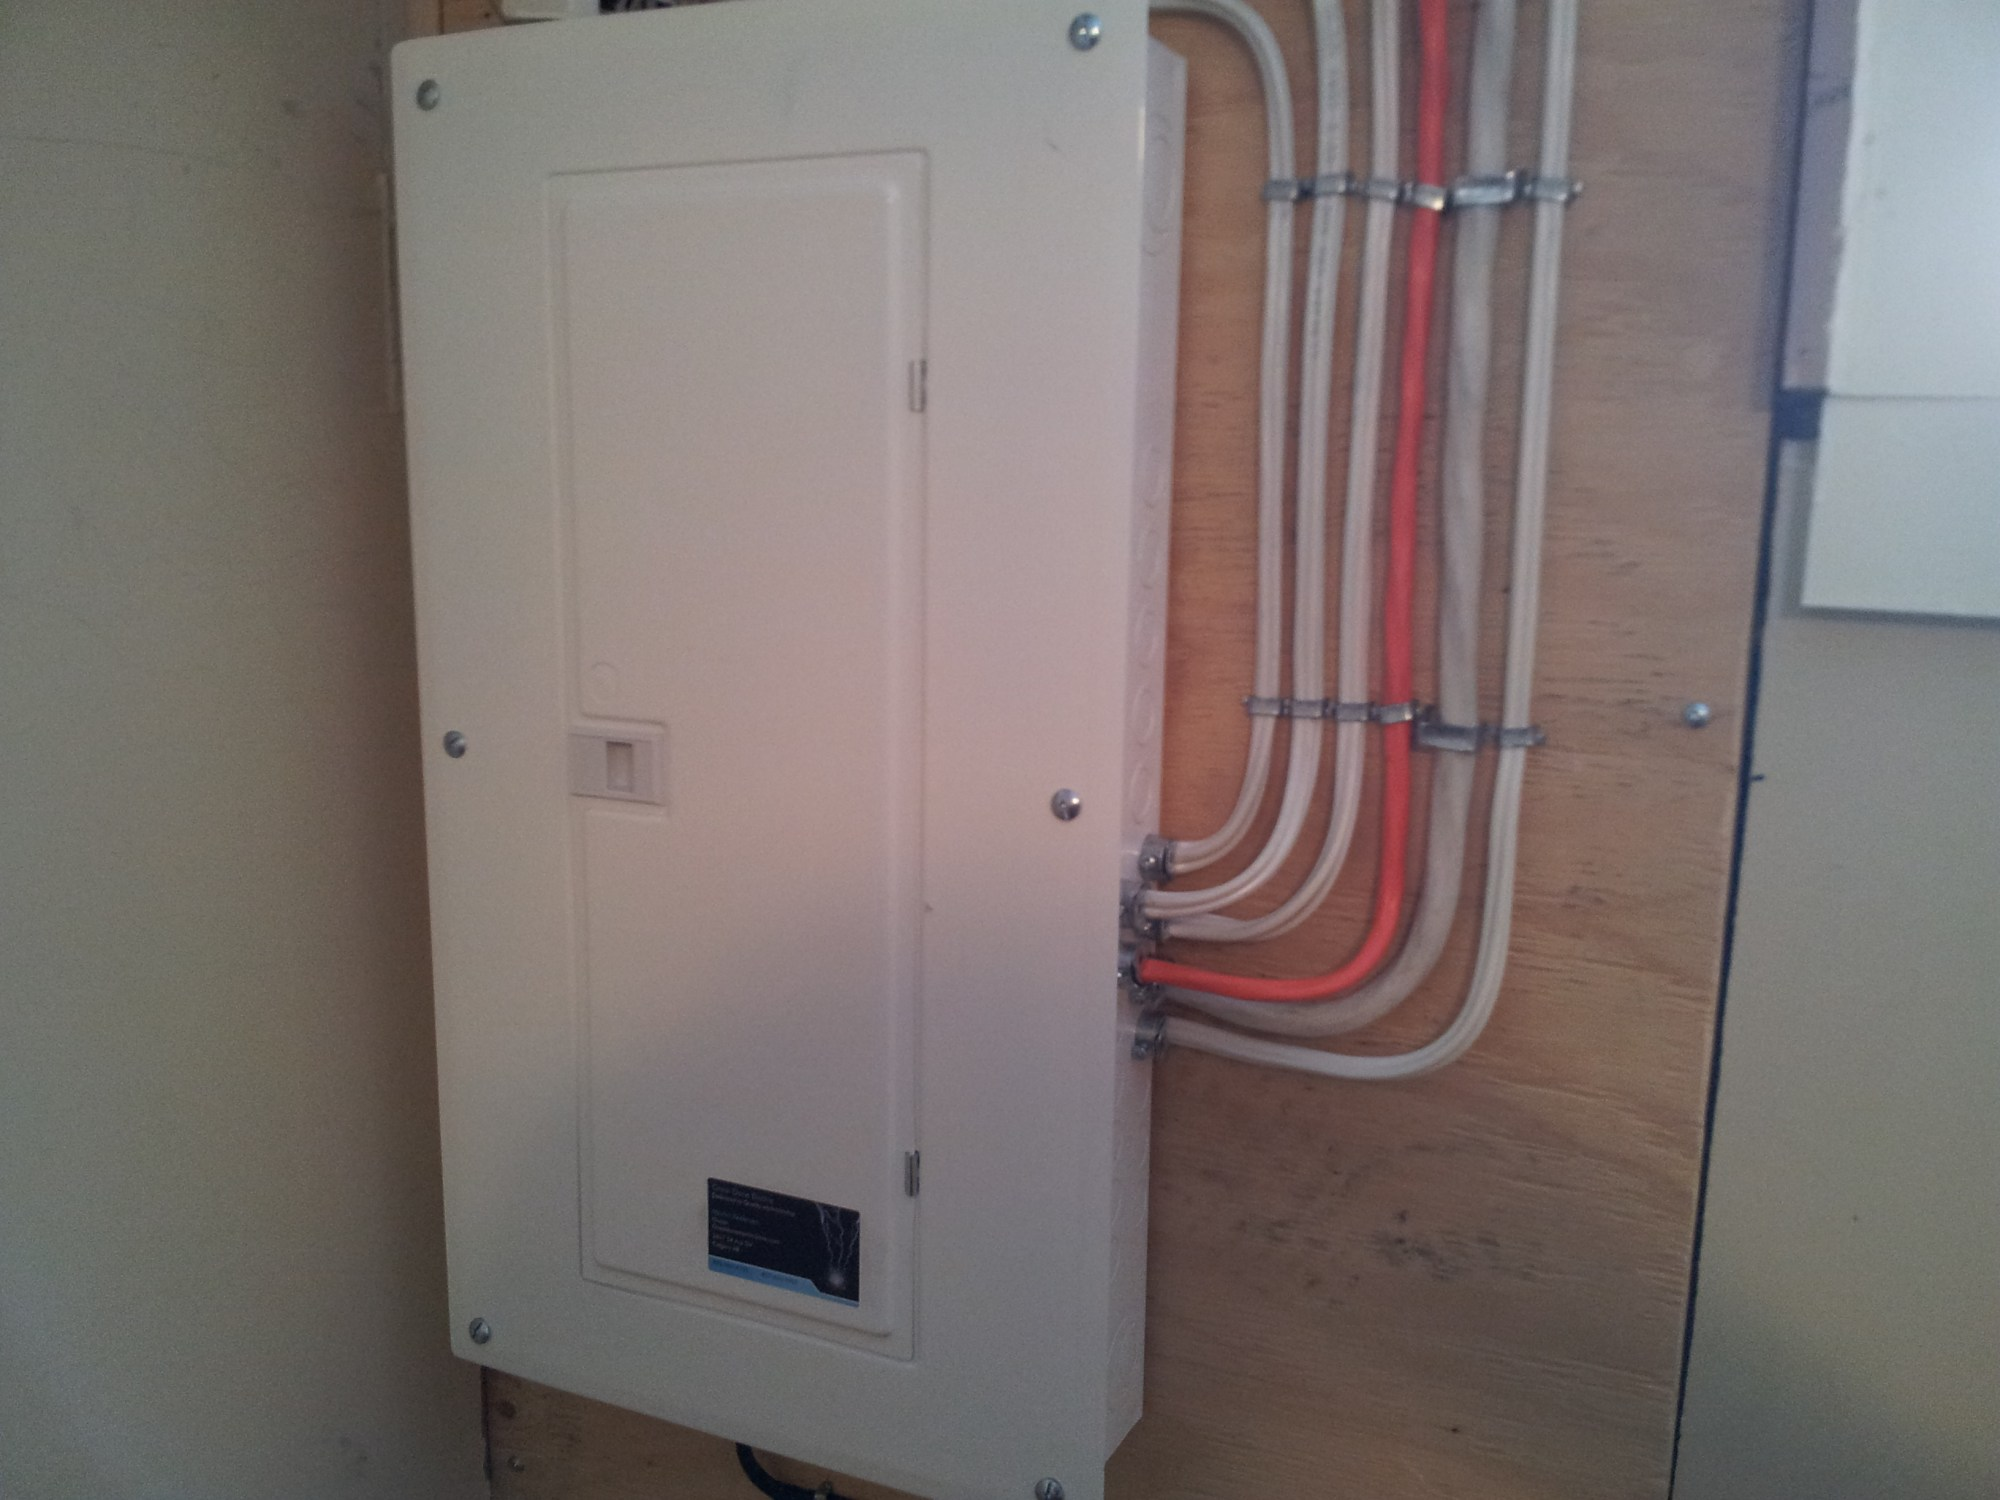 hight resolution of 60 amp fuse box don t call an electrician call an expert 400 amp fuse box old 60 amp fuse box